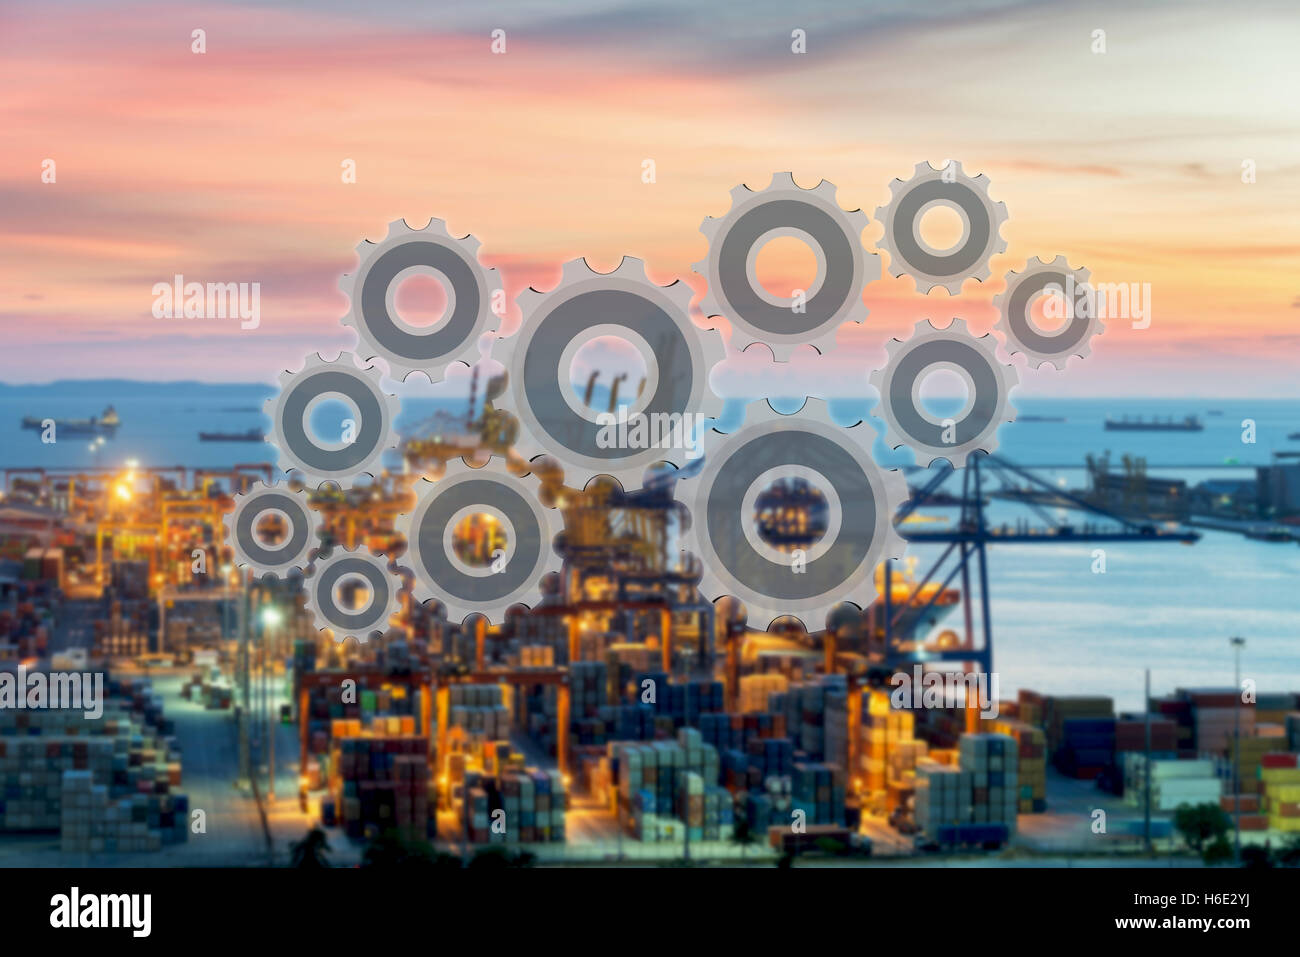 Supply chain connection network management of logistics with cargo container termimal port in background use for - Stock Image